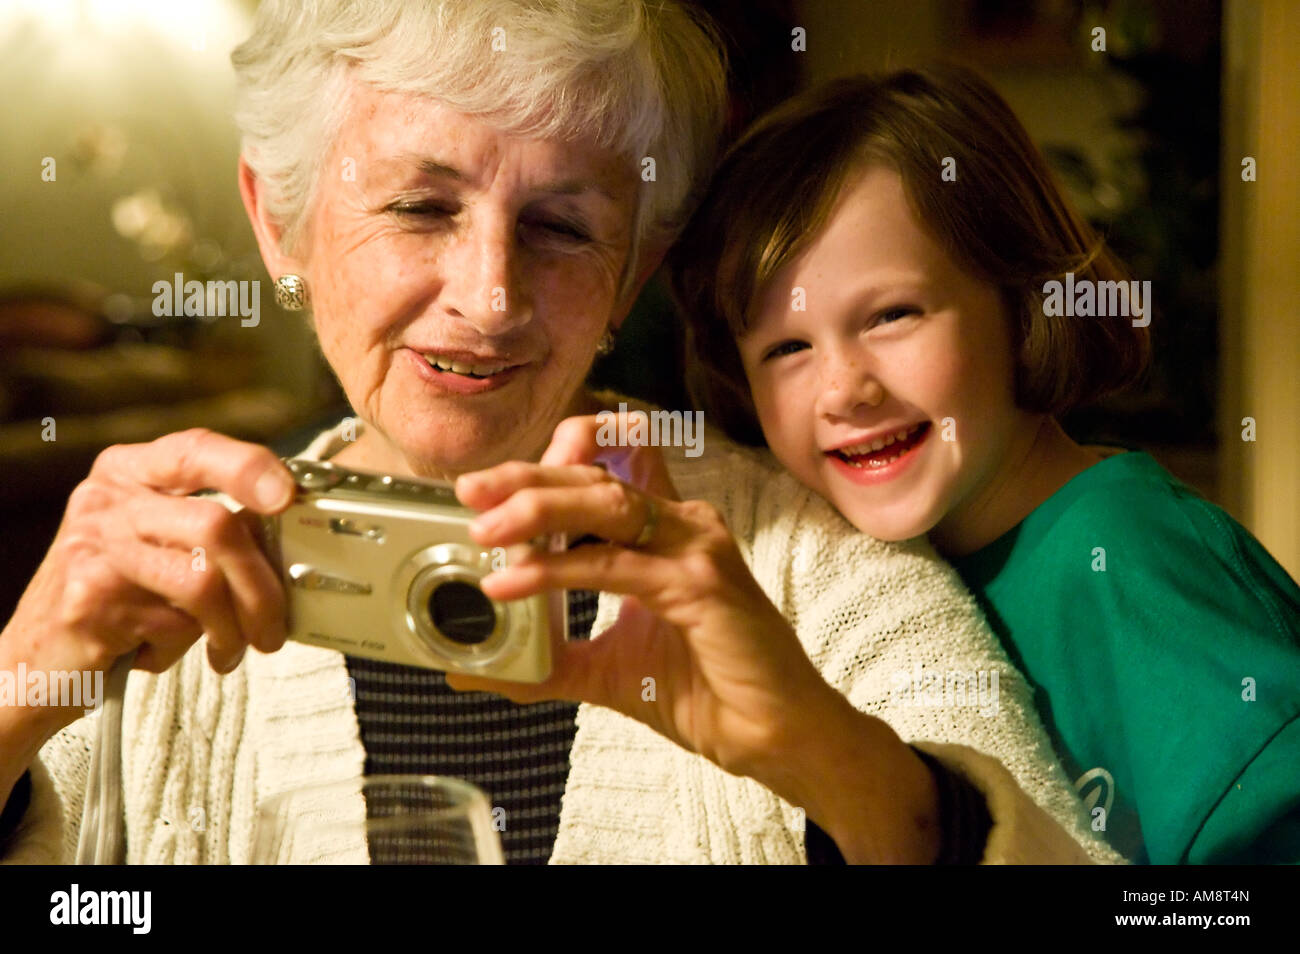 Grandmother and granddaughter enjoy a digital point and shoot camera - Stock Image